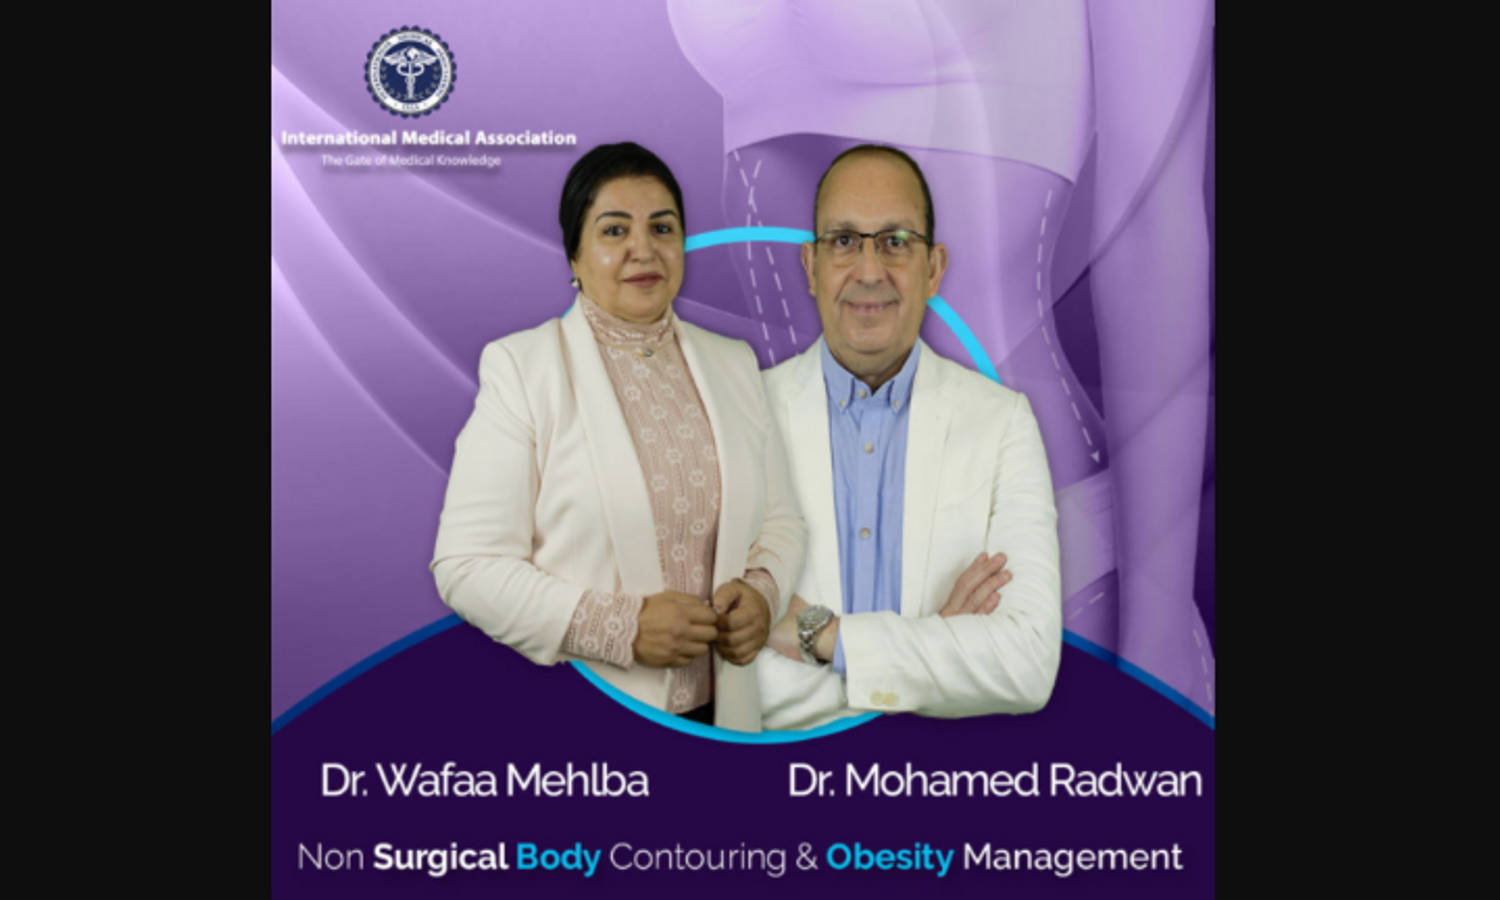 Non Surgical Body Contouring & Obesity Management